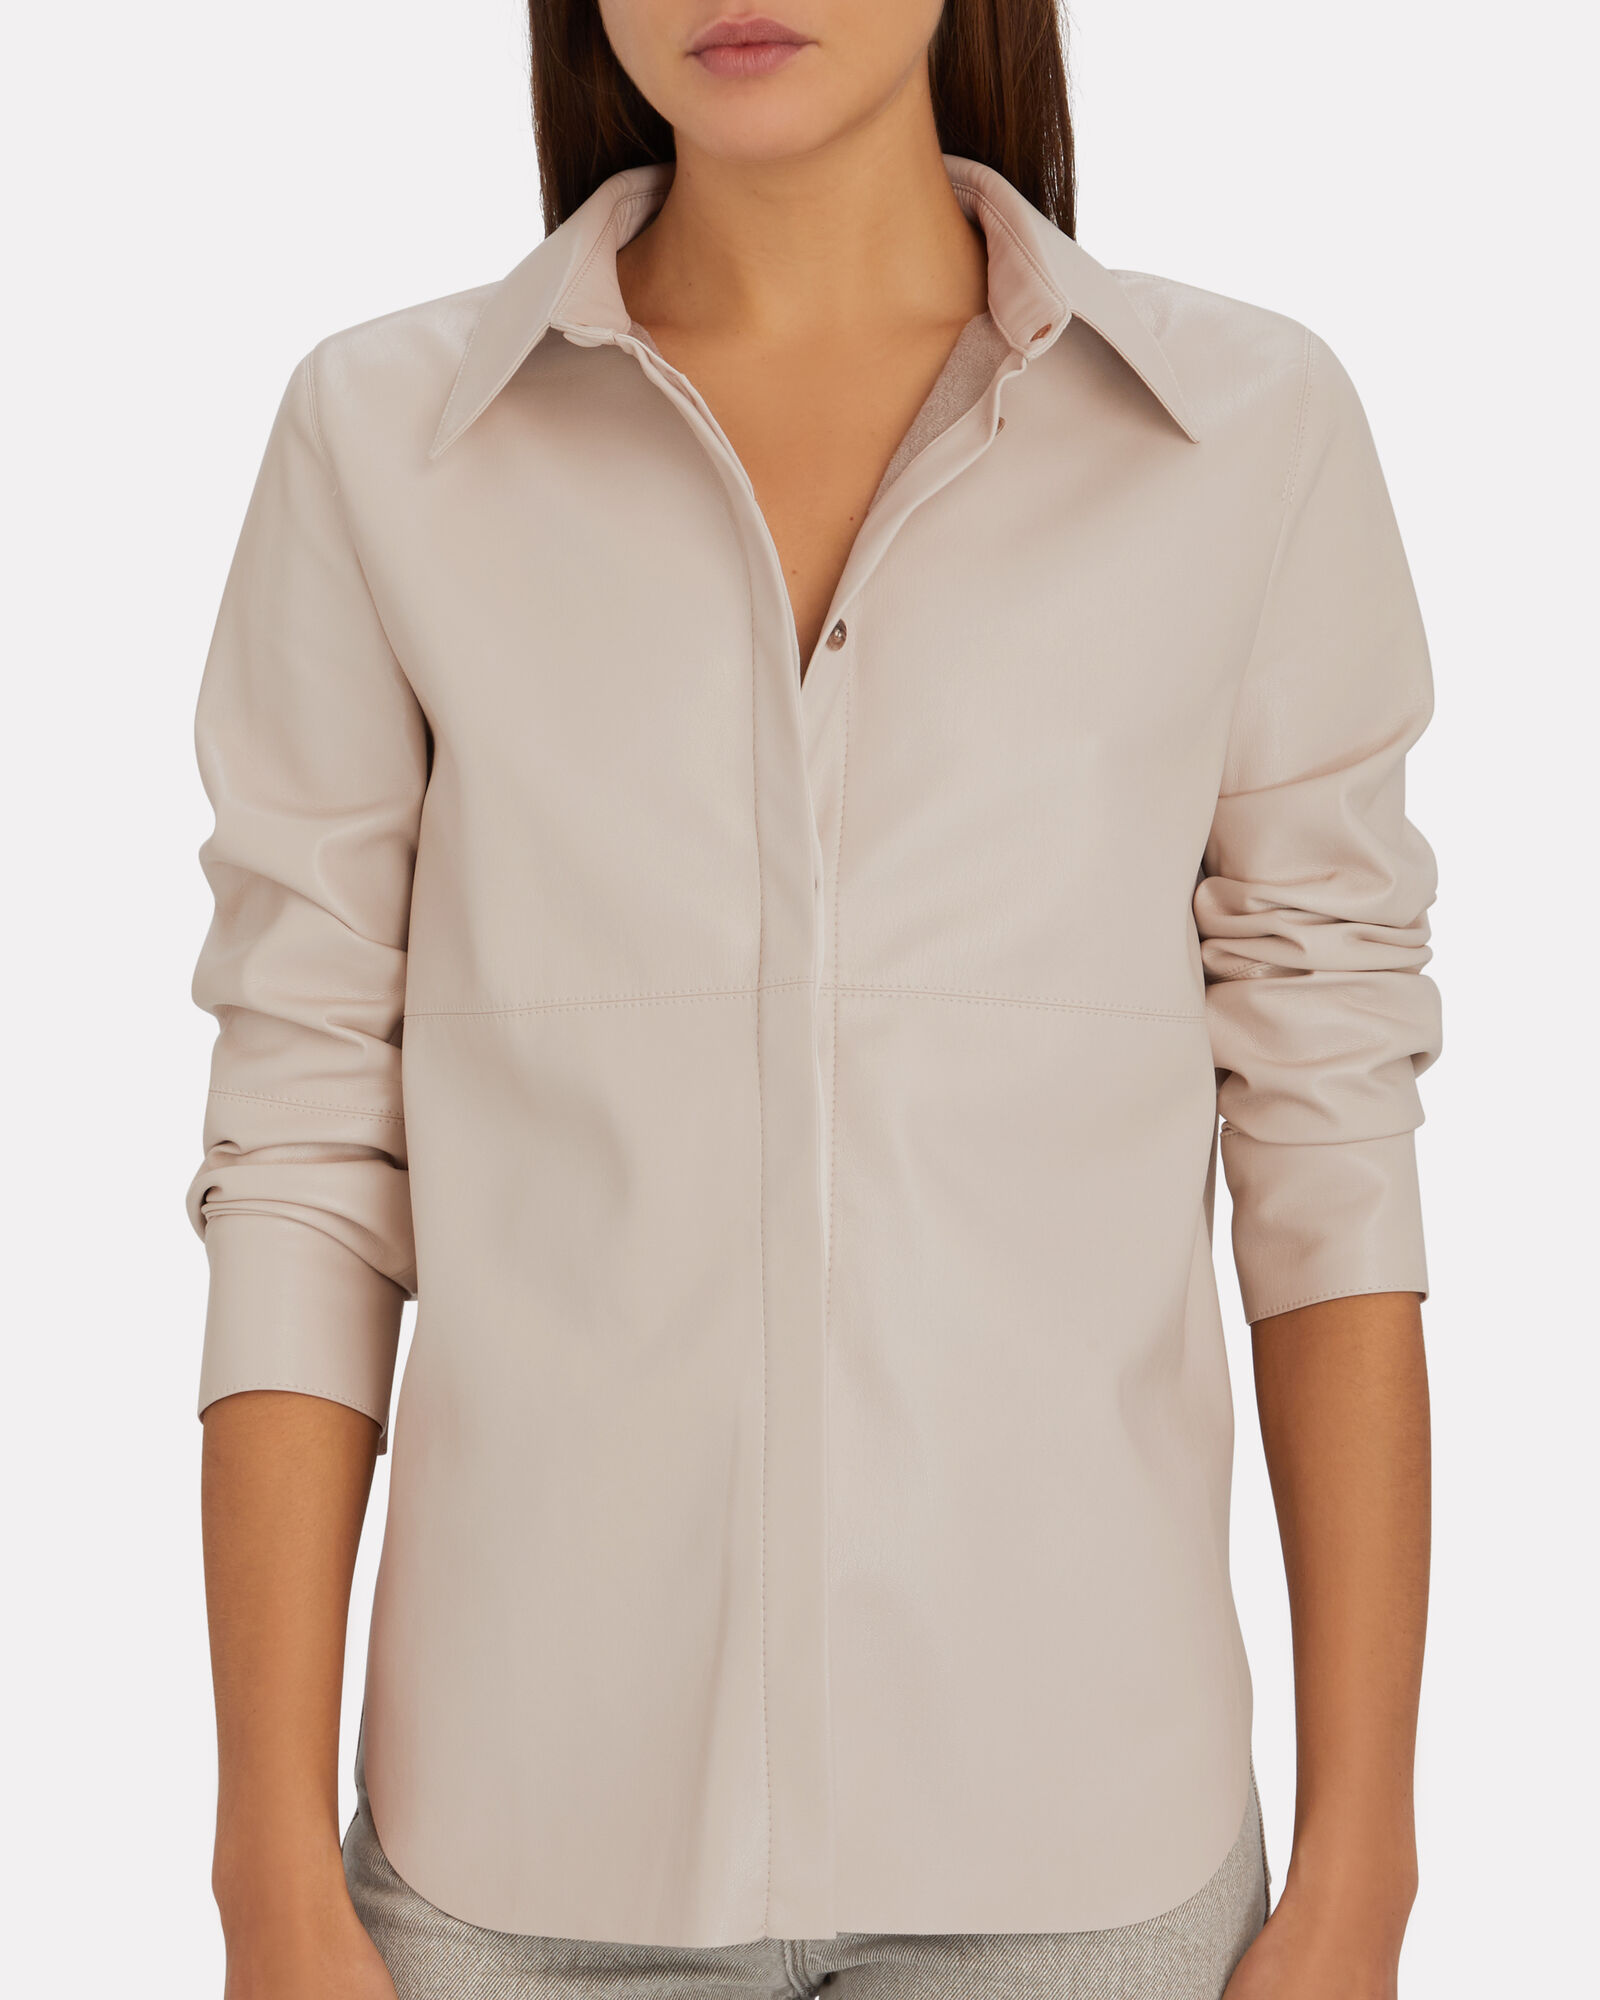 Naum Vegan Leather Shirt, IVORY, hi-res